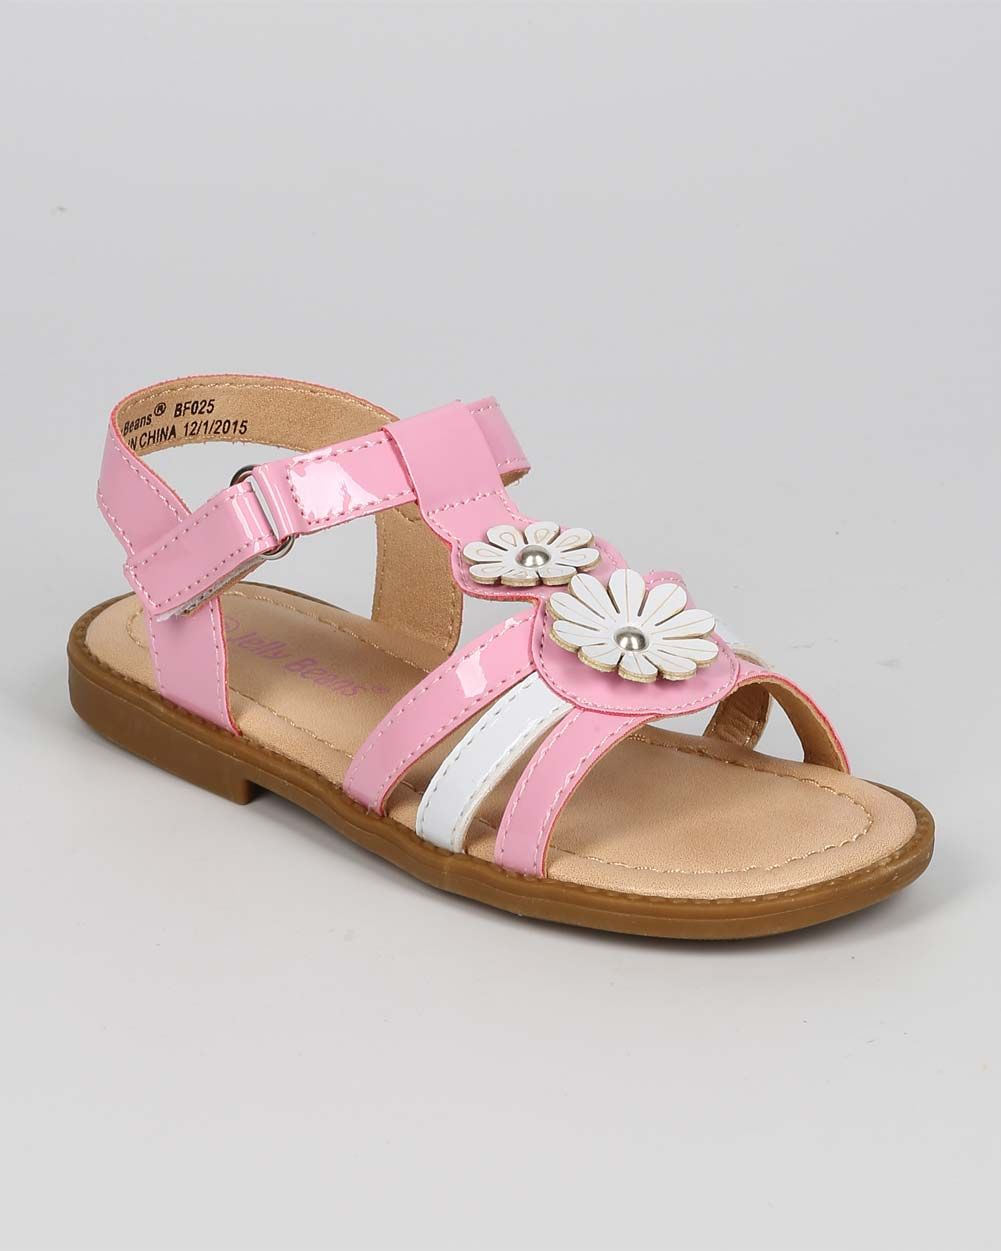 New-Girl-Jelly-Beans-Safe-Patent-Open-Toe-Two-Tone-T-Strap-Velcro-Sandal-Sz-6-11